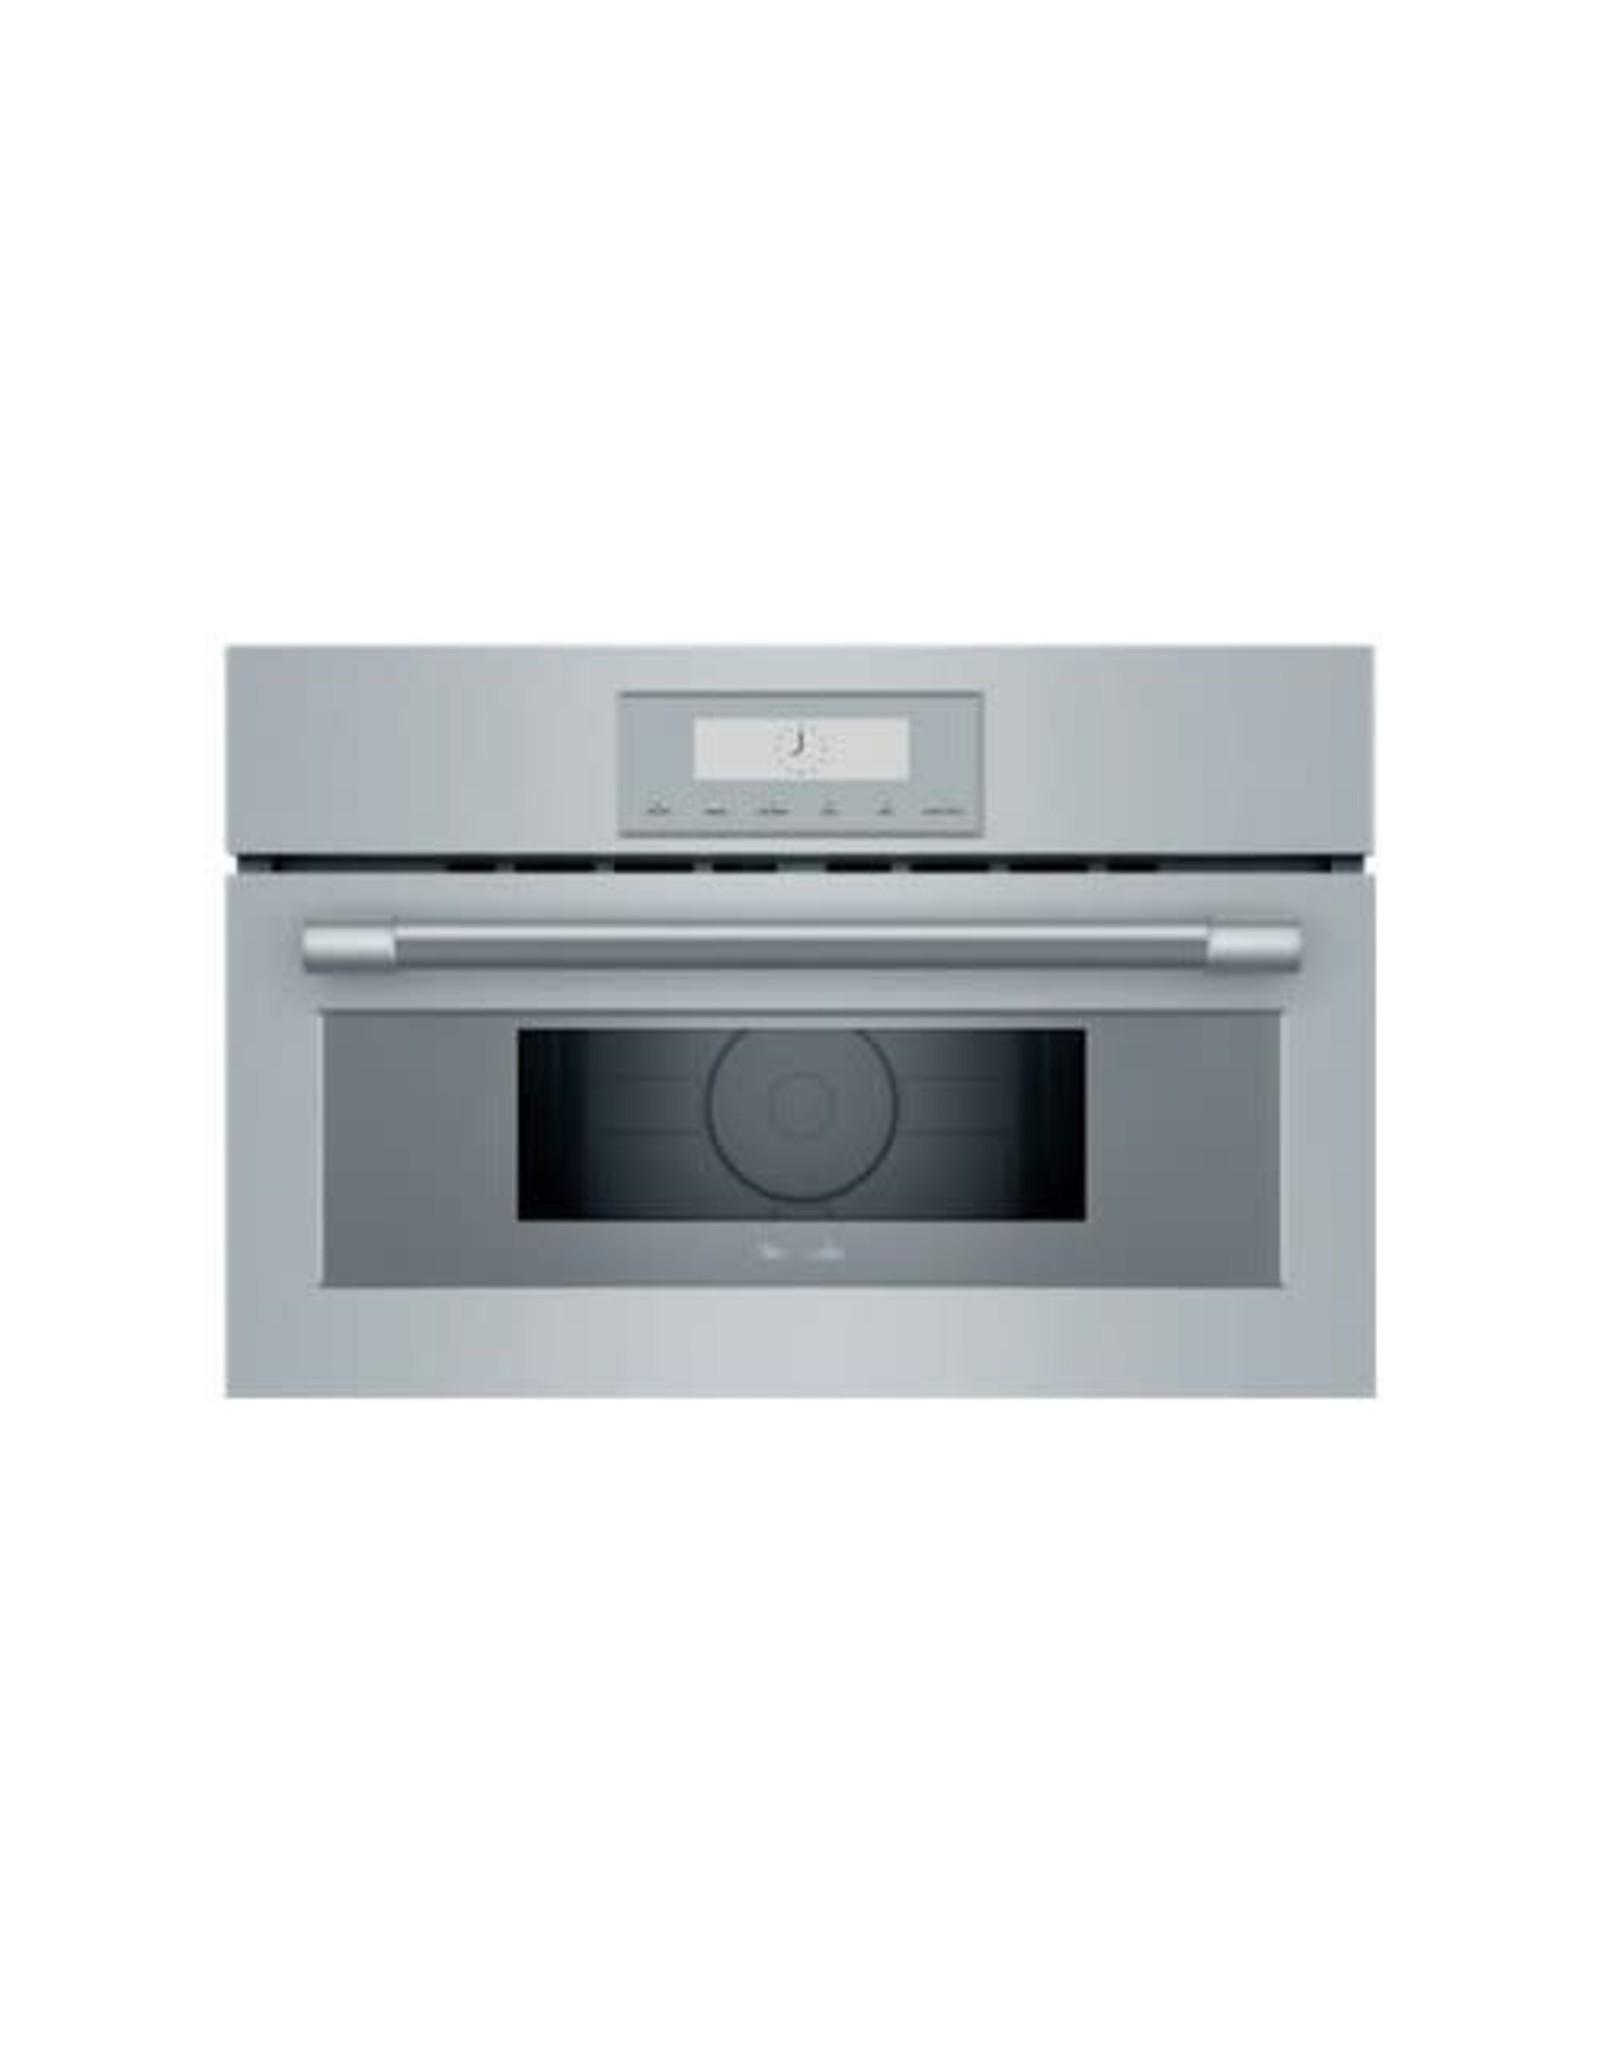 MB30WP Thermador - PROFESSIONAL SERIES 1.6 Cu. Ft. Built-In Microwave